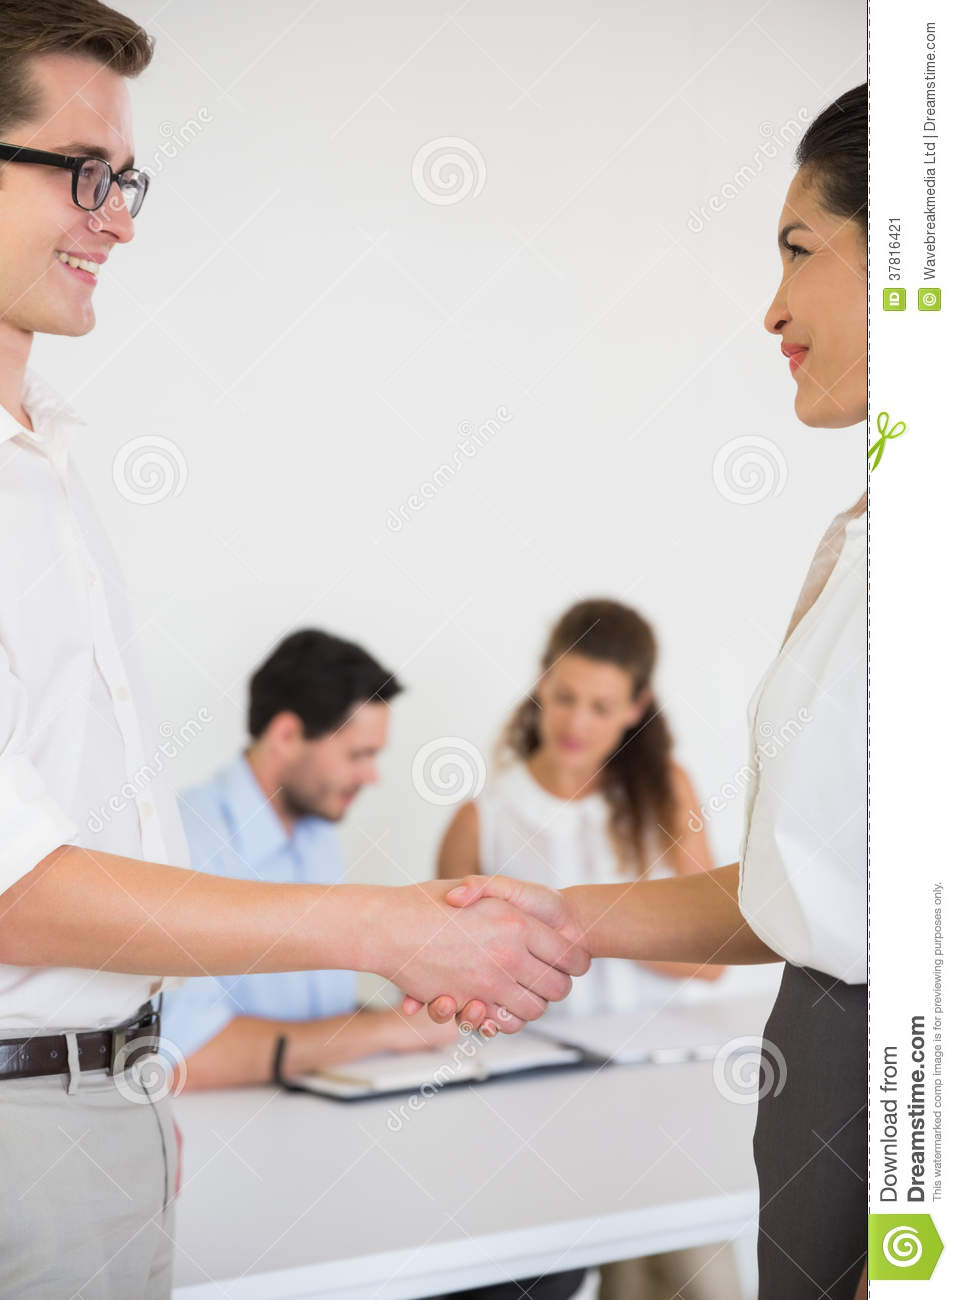 Business People Greeting Each Other Stock Image Image Of Standing